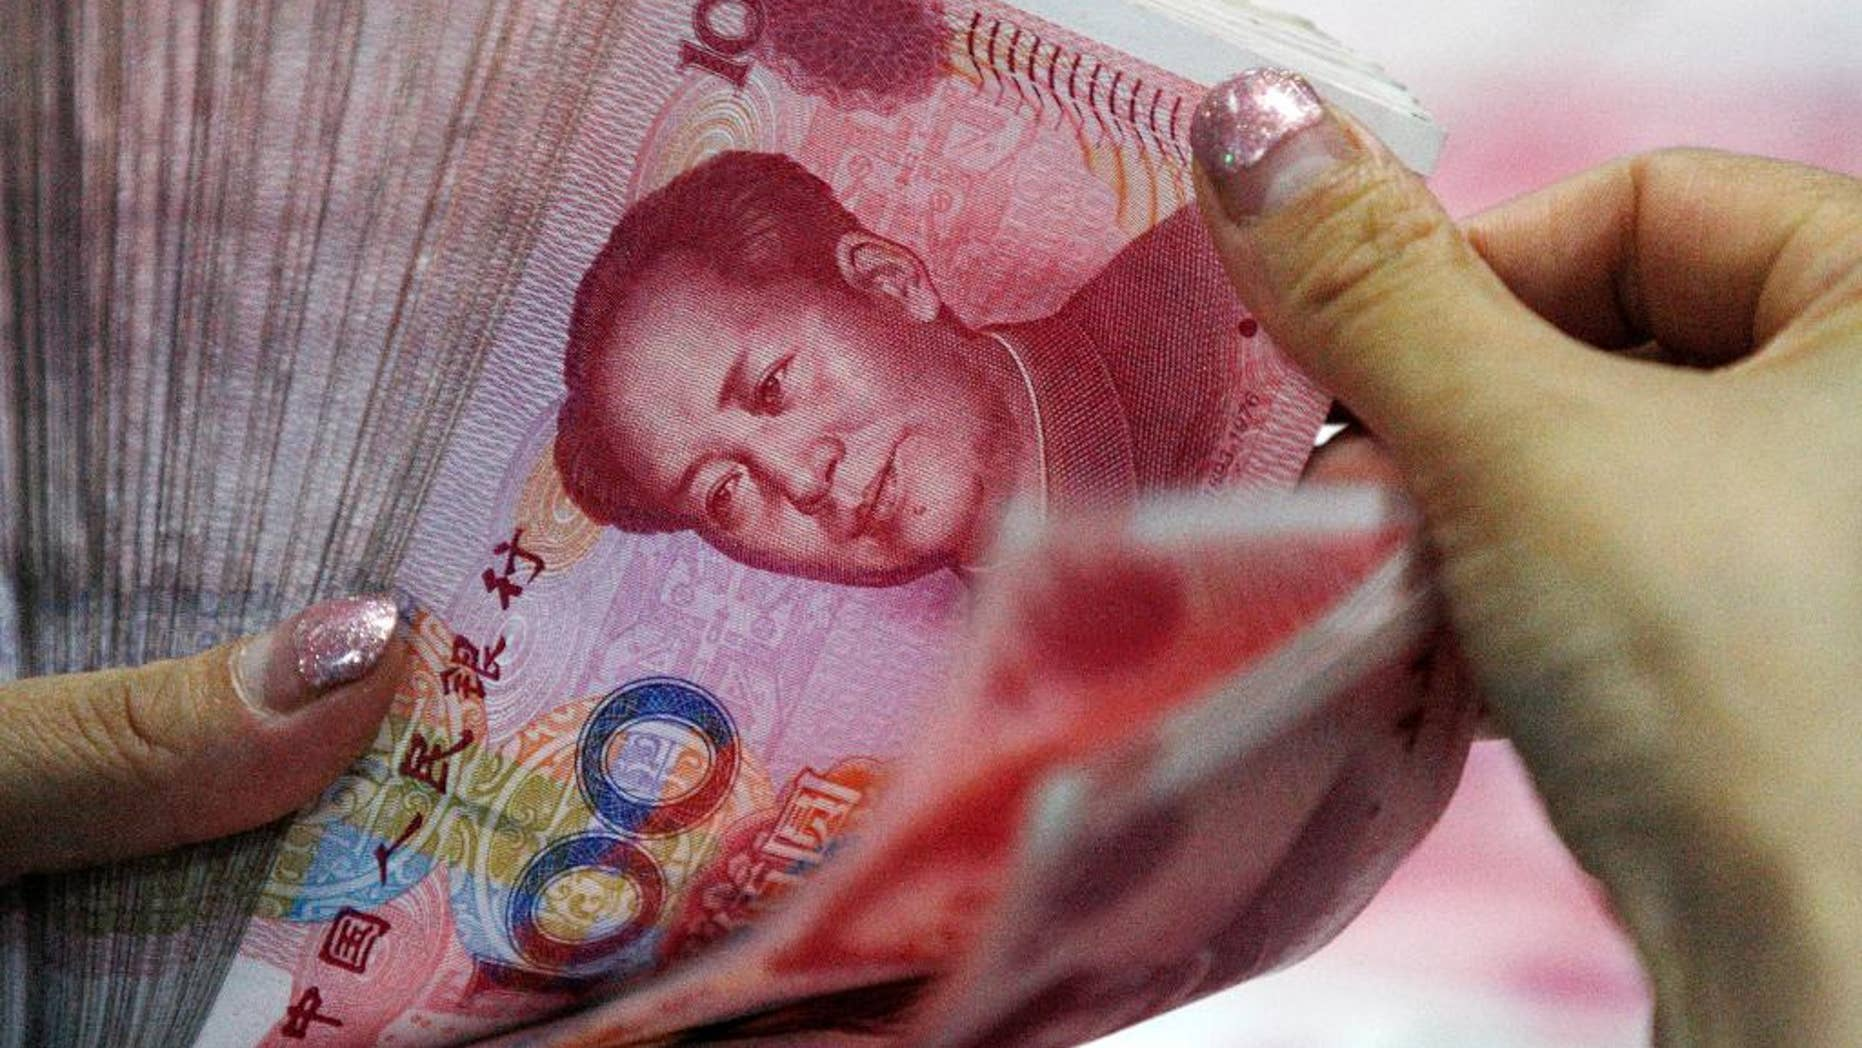 In this Tuesday, Aug. 11, 2015 photo, a bank clerk counts Chinese currency notes at a bank outlet in Huaibei in central China's Anhui province.  China's unexpected devaluation of its currency in August raised fears that the world's second-largest economy was slowing more than anyone had thought. (Chinatopix via AP, File) CHINA OUT